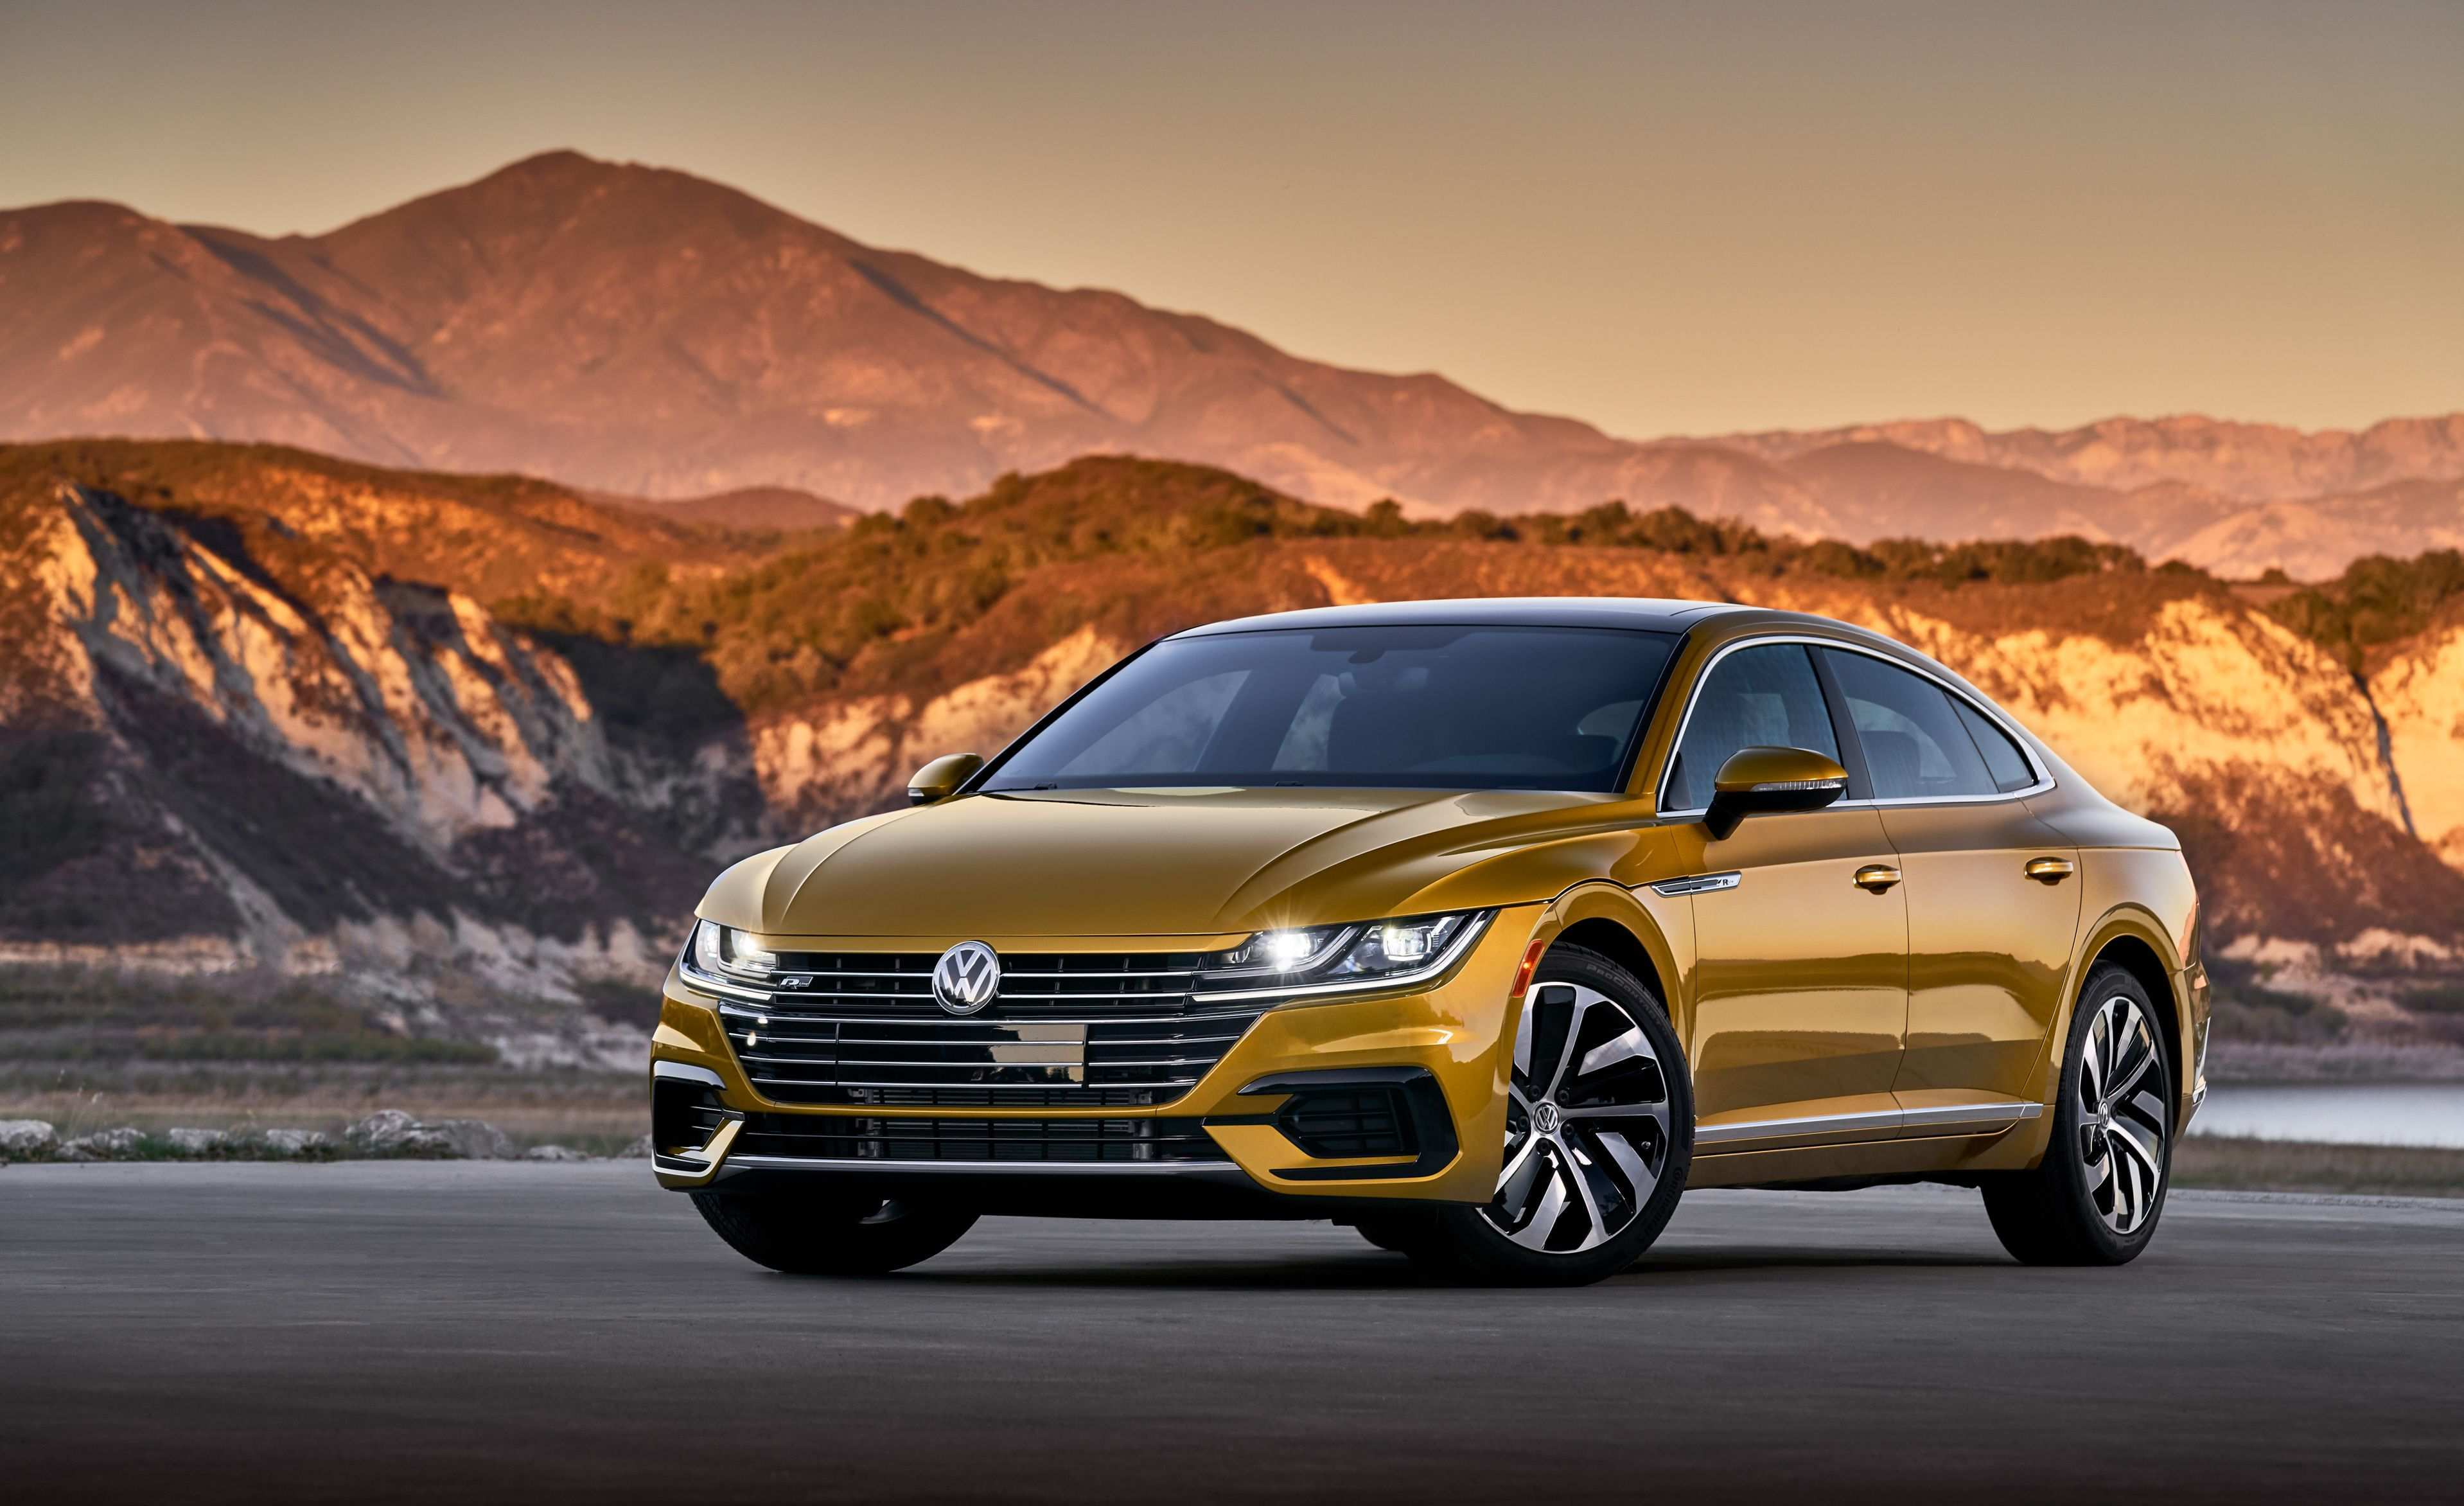 31 All New Vw 2019 Arteon Images